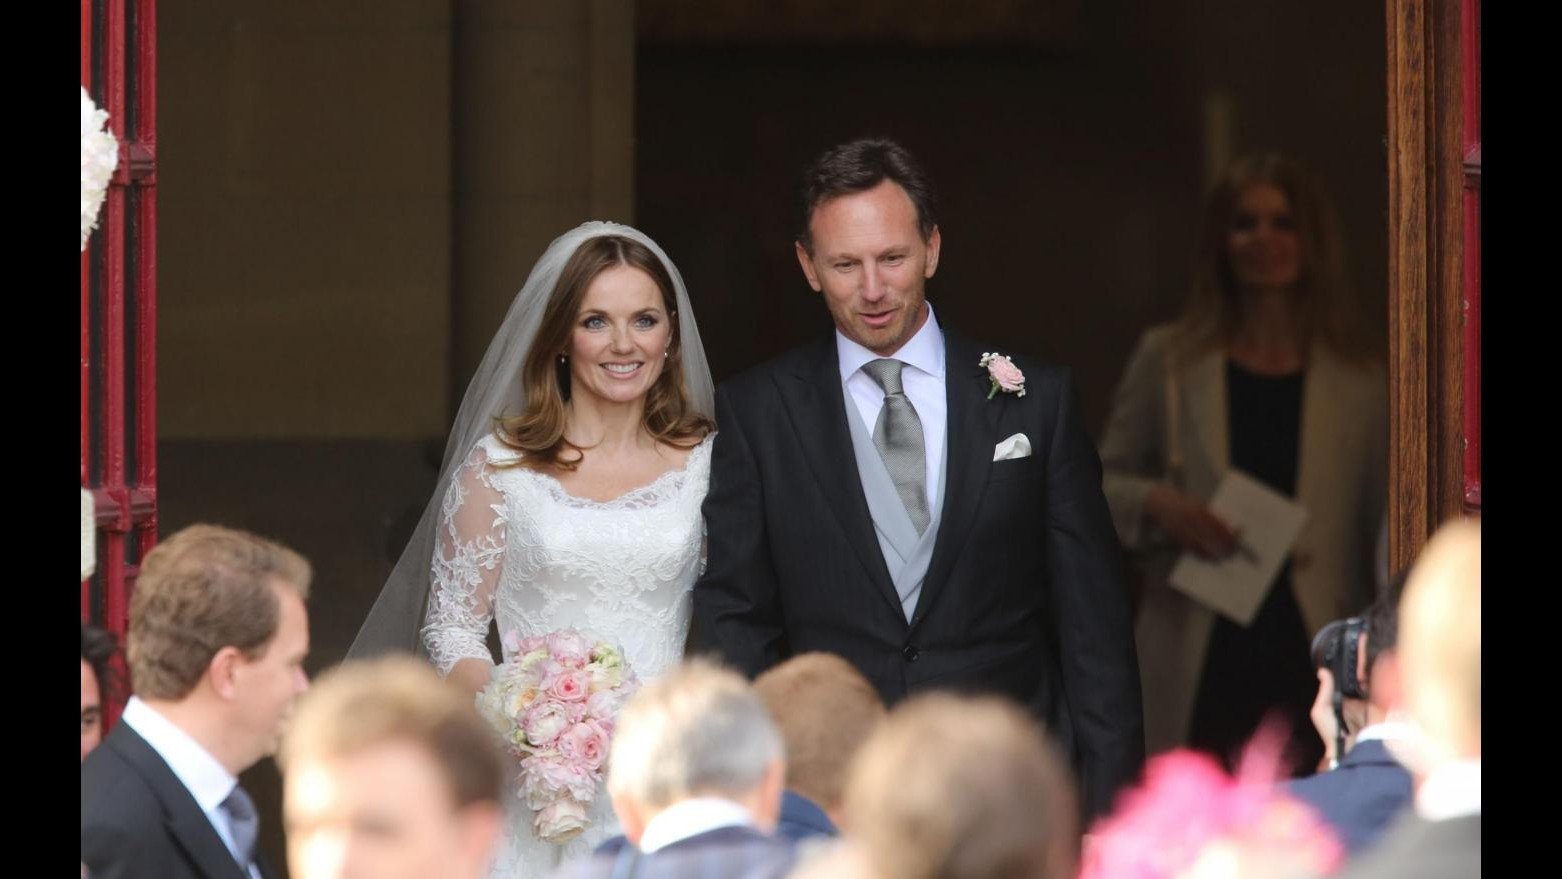 Geri Halliwell a nozze con team manager Red Bull Christian Horner